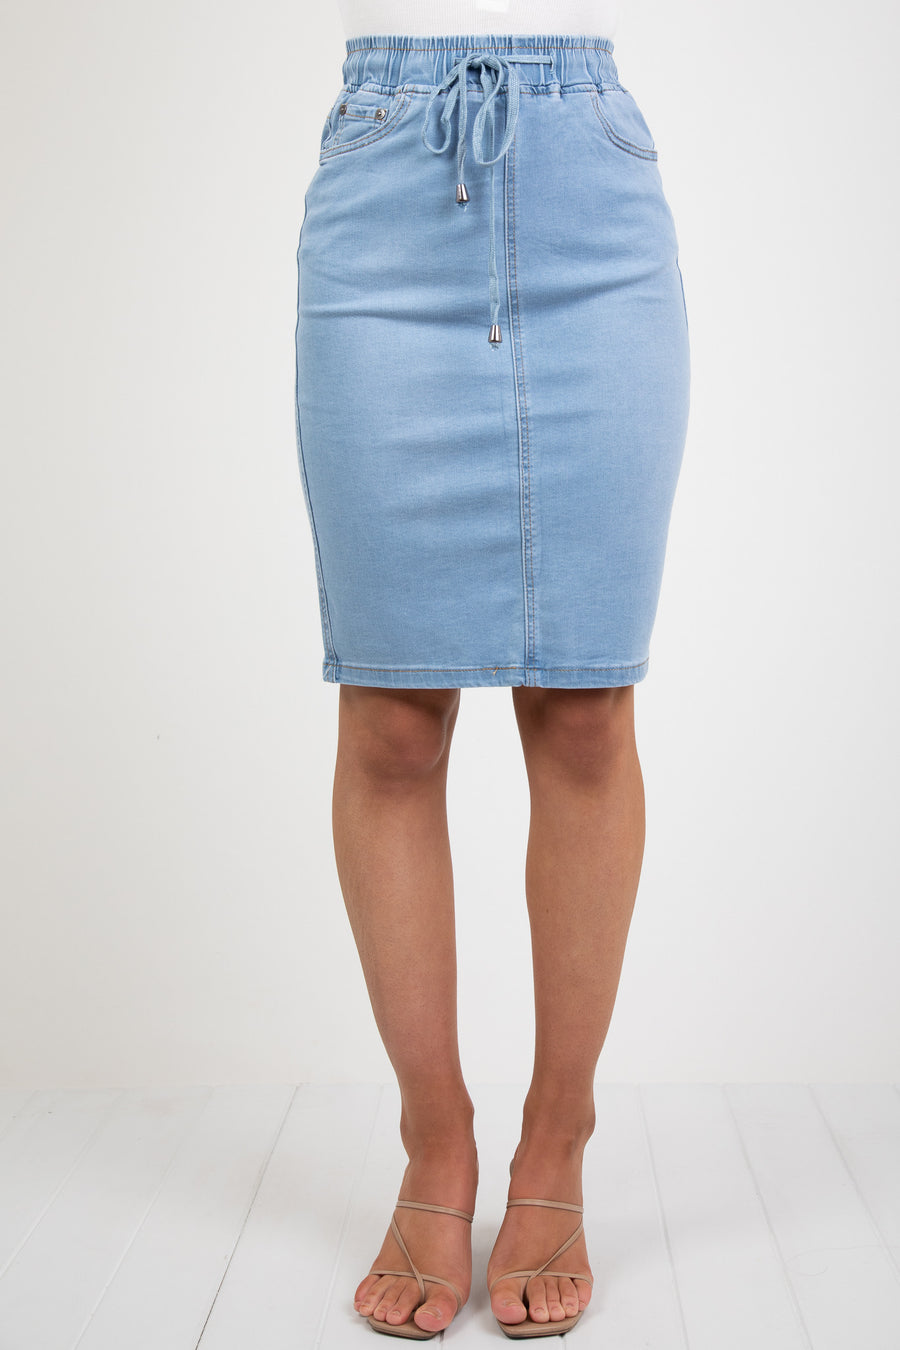 BILLY SKIRT - LIGHT BLUE